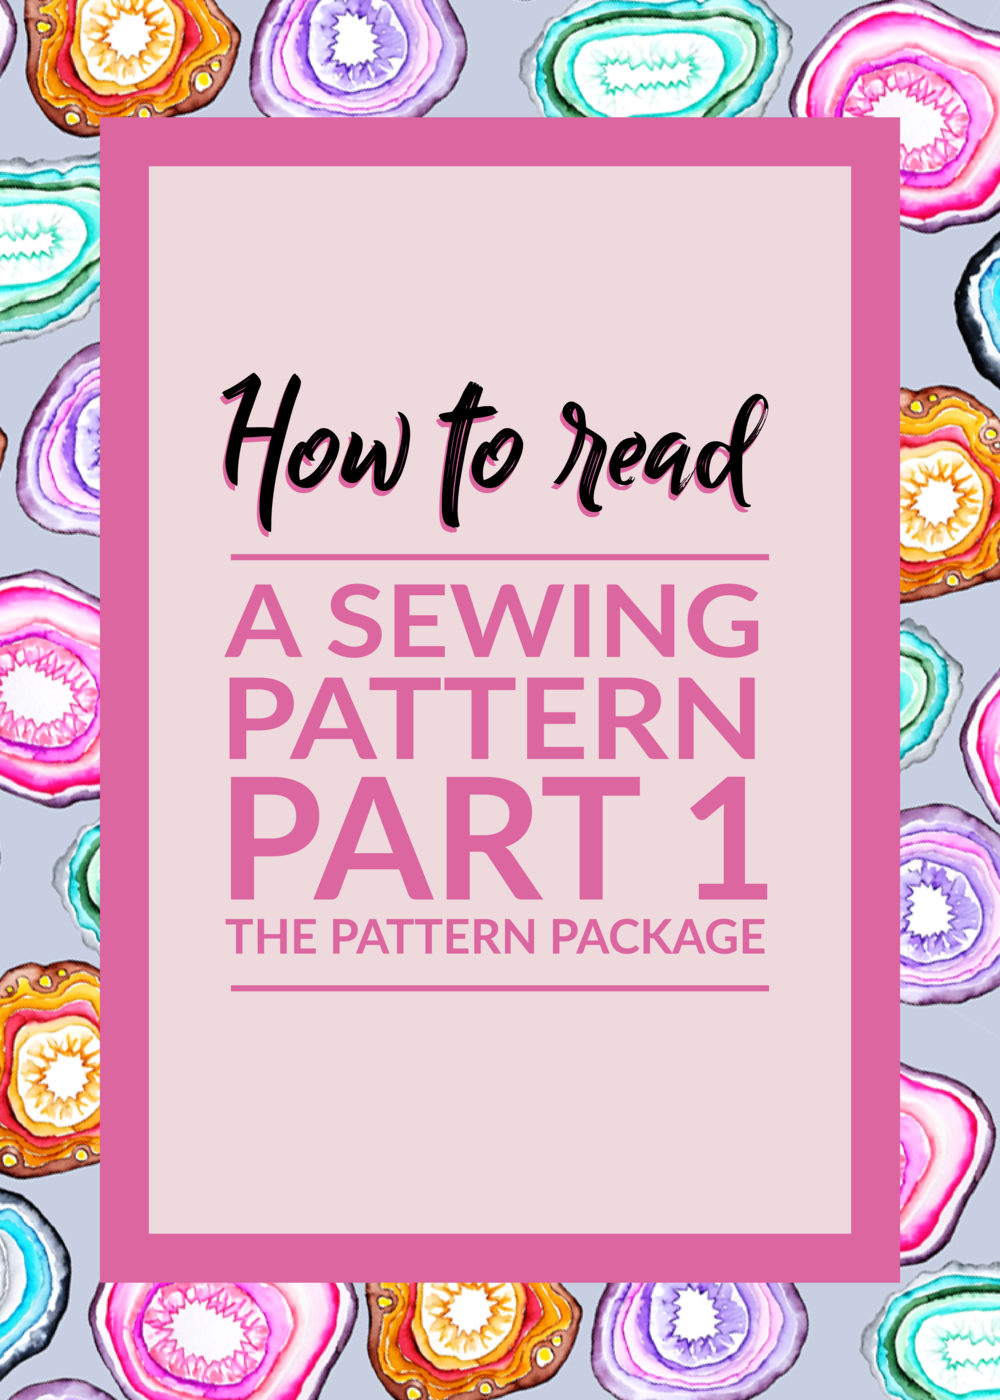 How to read a sewing pattern Part 1 by Making Something Rad